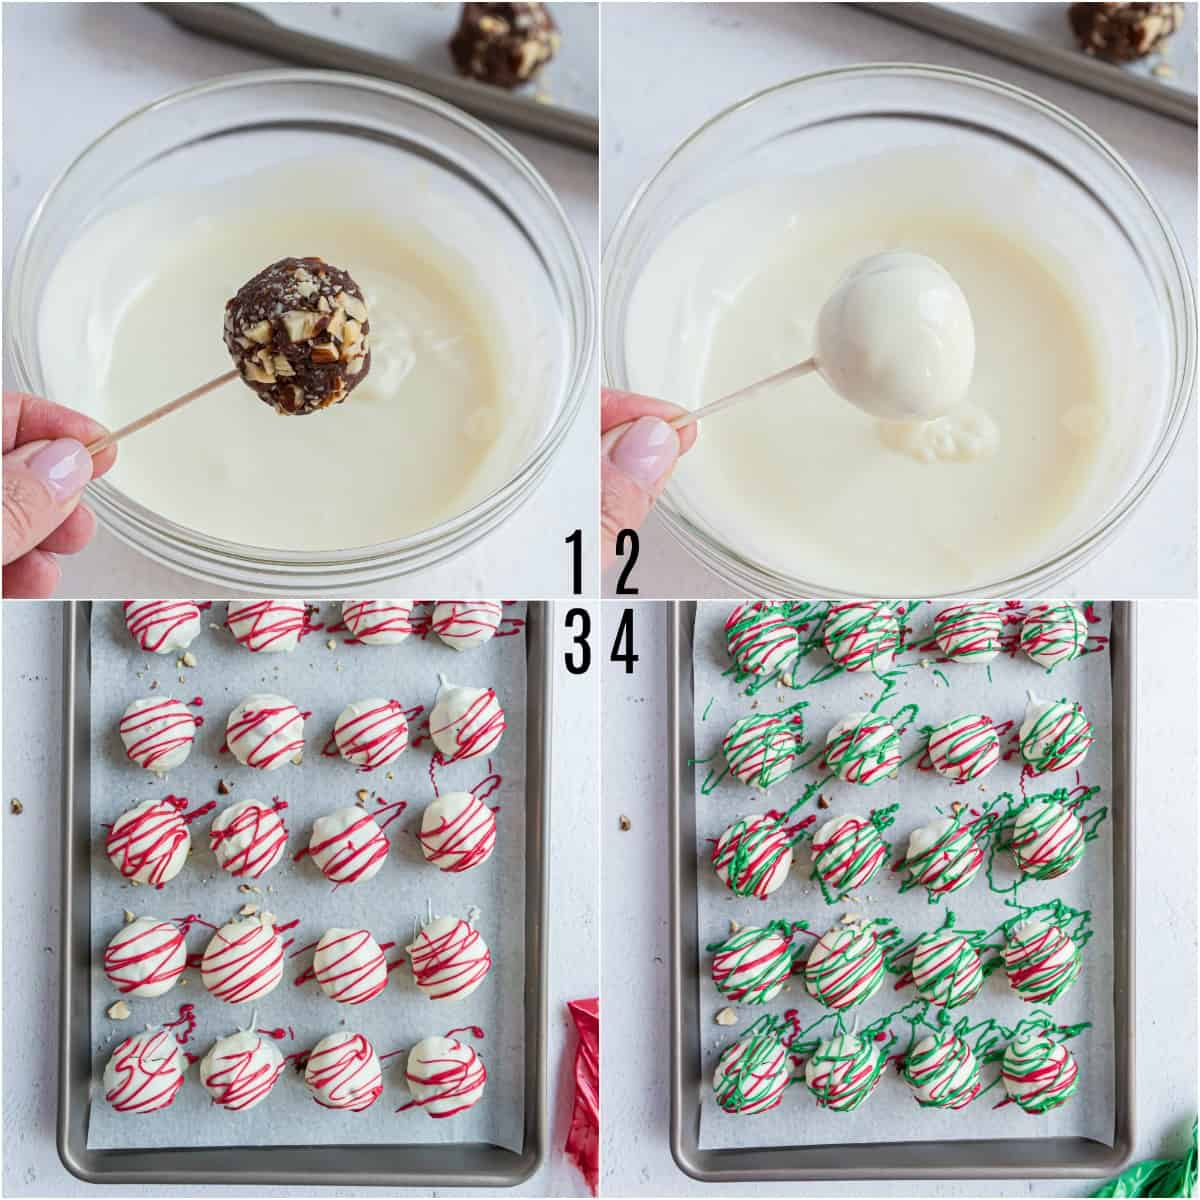 Photos showing how to dip almond truffles.